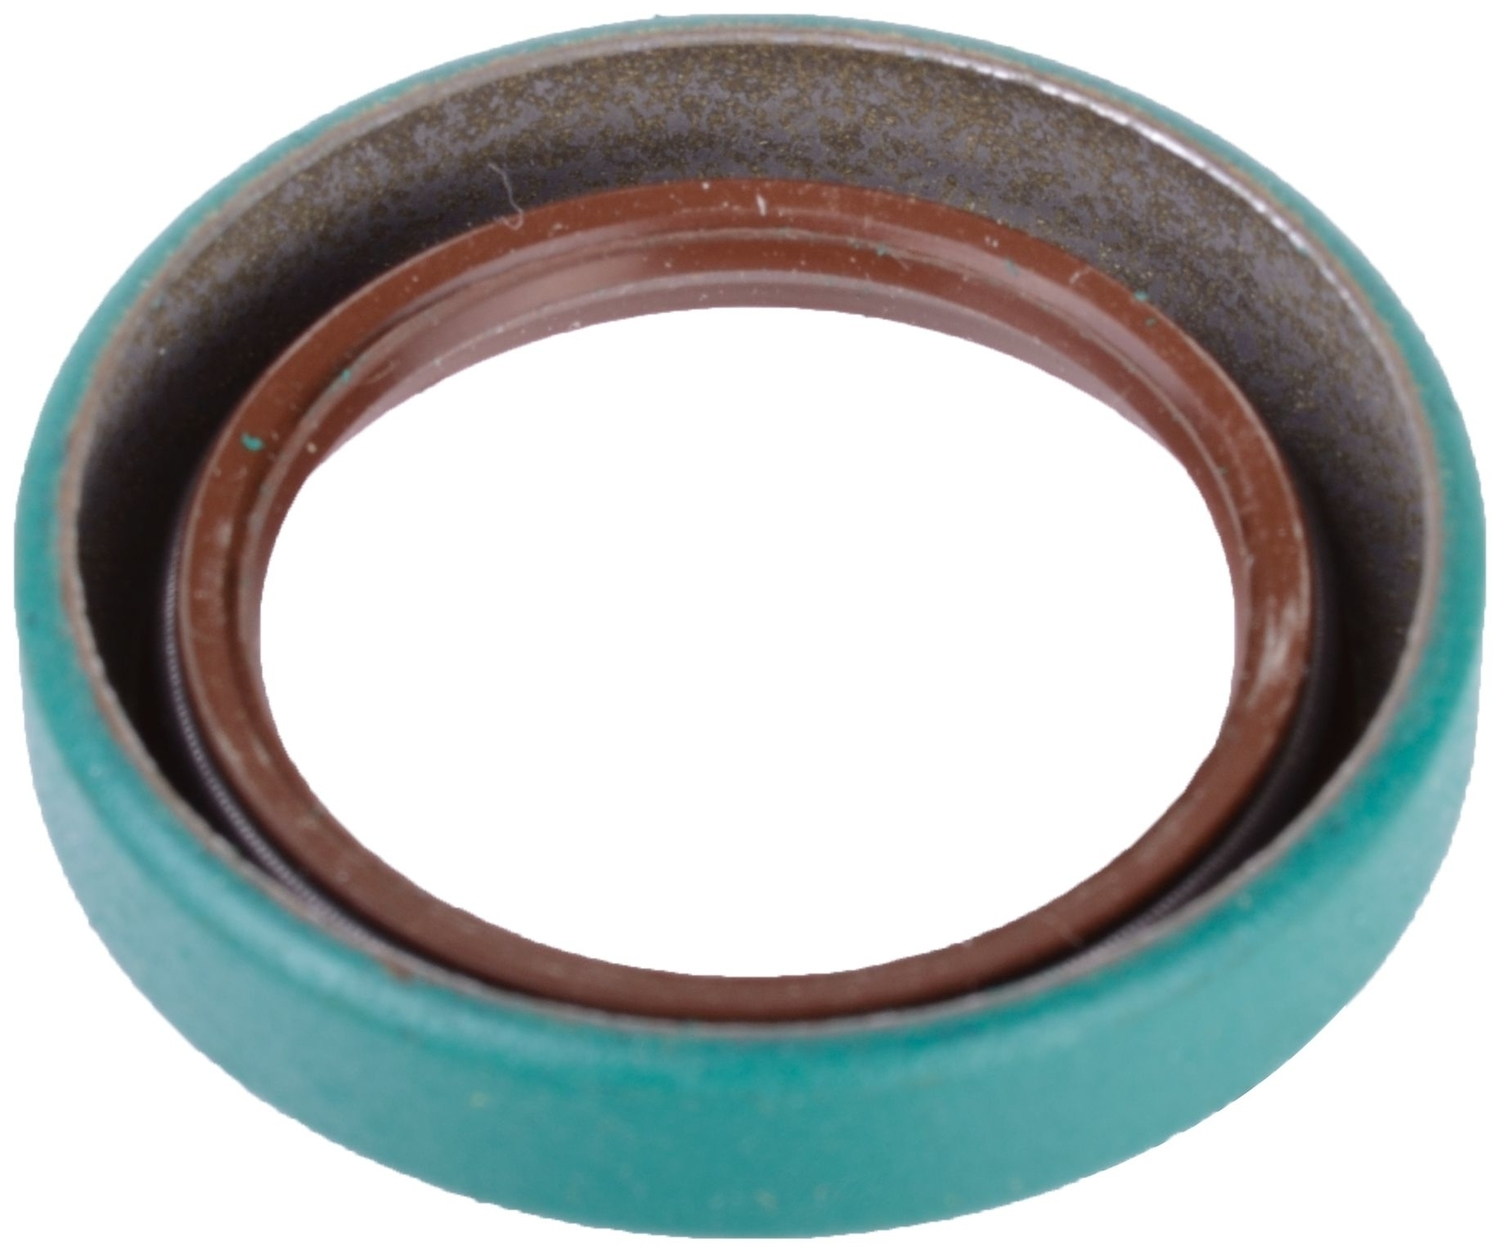 SKF (CHICAGO RAWHIDE) - Manual Trans Main Shaft Seal - SKF 9706